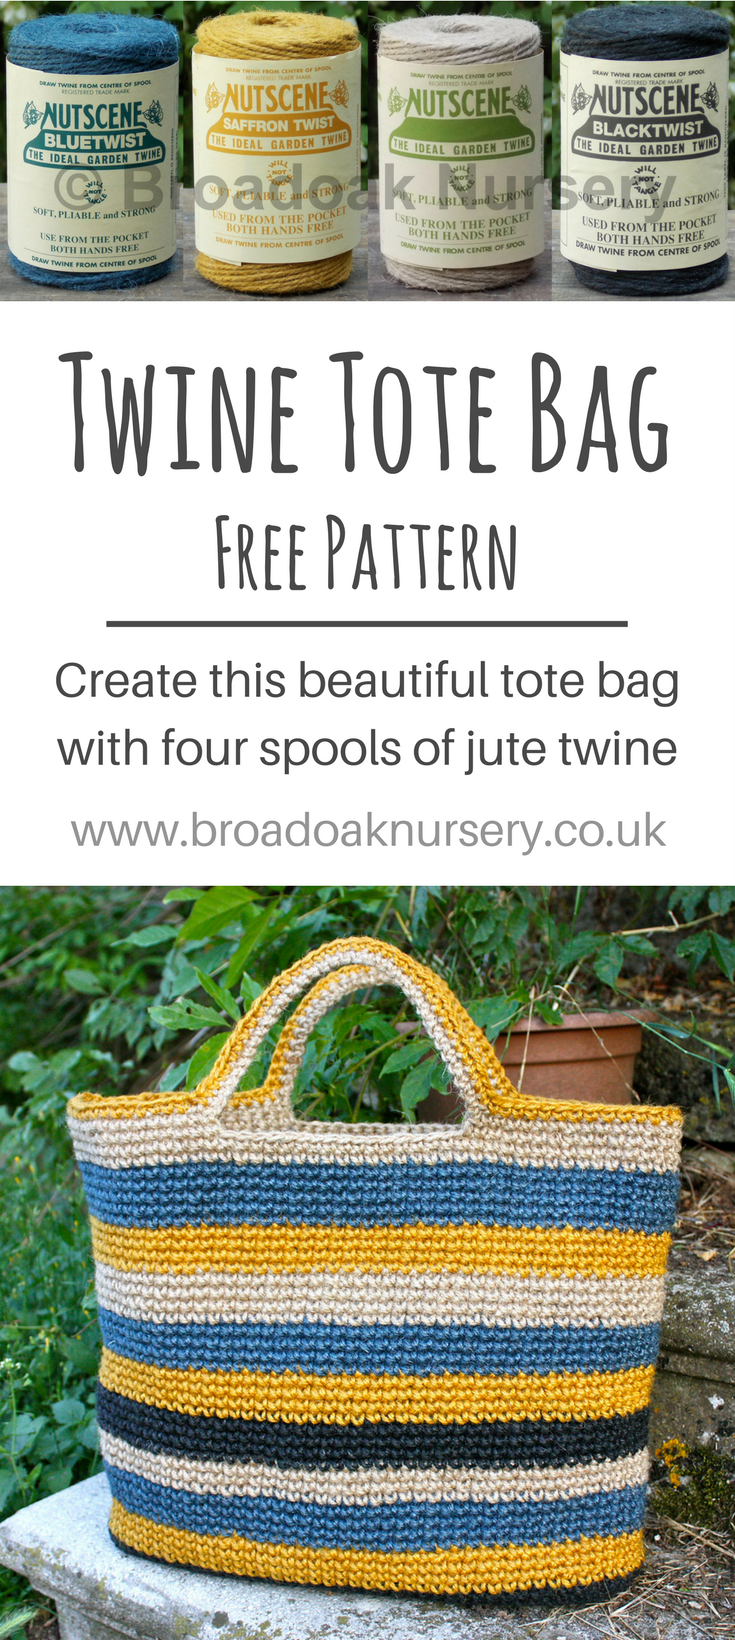 Create this beautiful tote bag with four spools of our jute twine ...